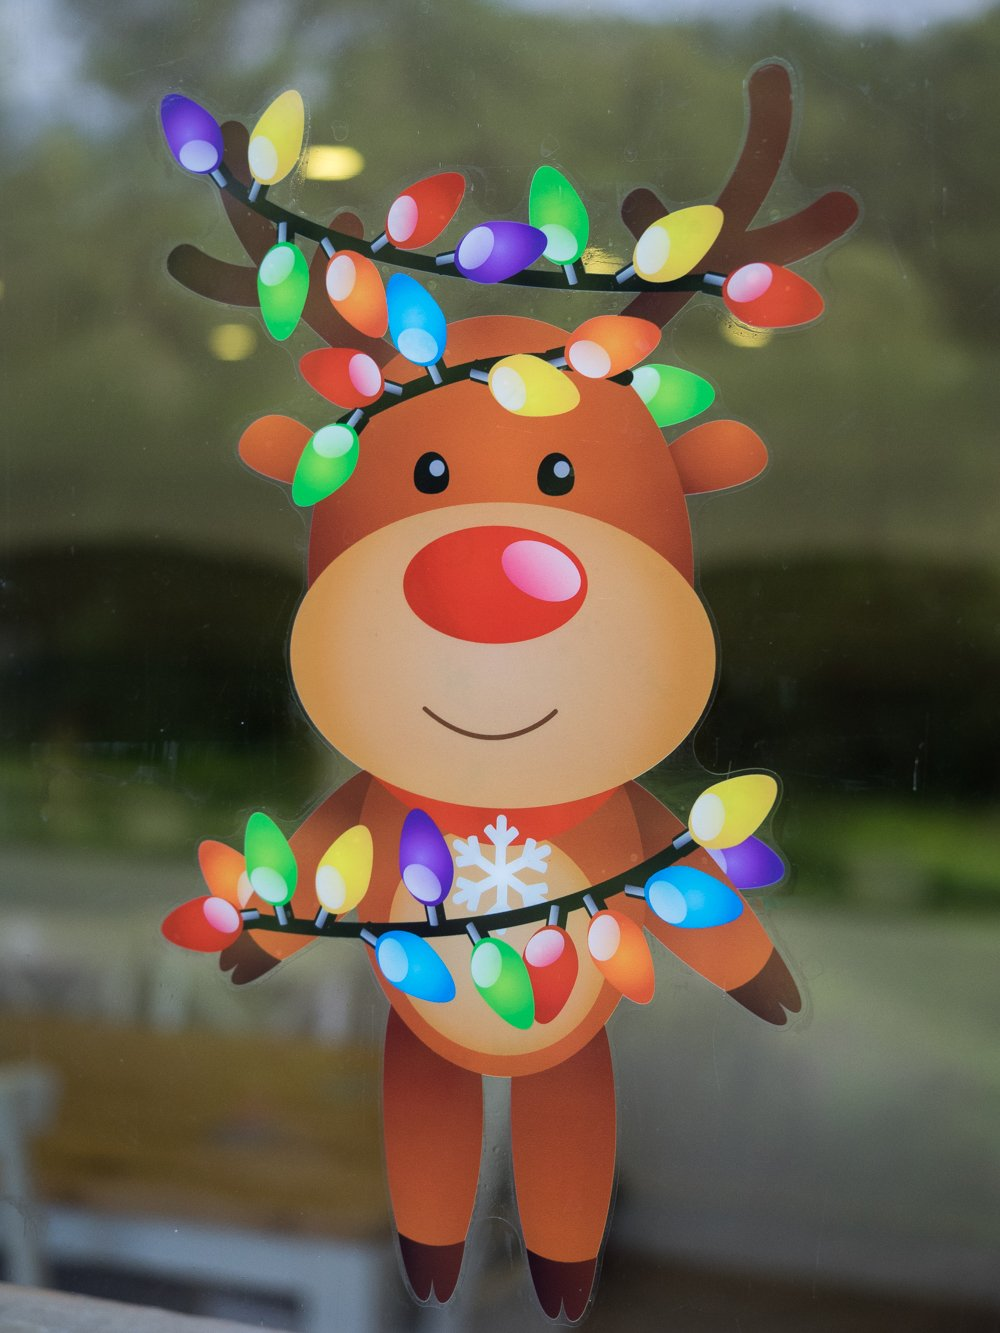 Happy Christmas Reindeer High Quality DoubleSided Static Cling - Window stickers amazon uk